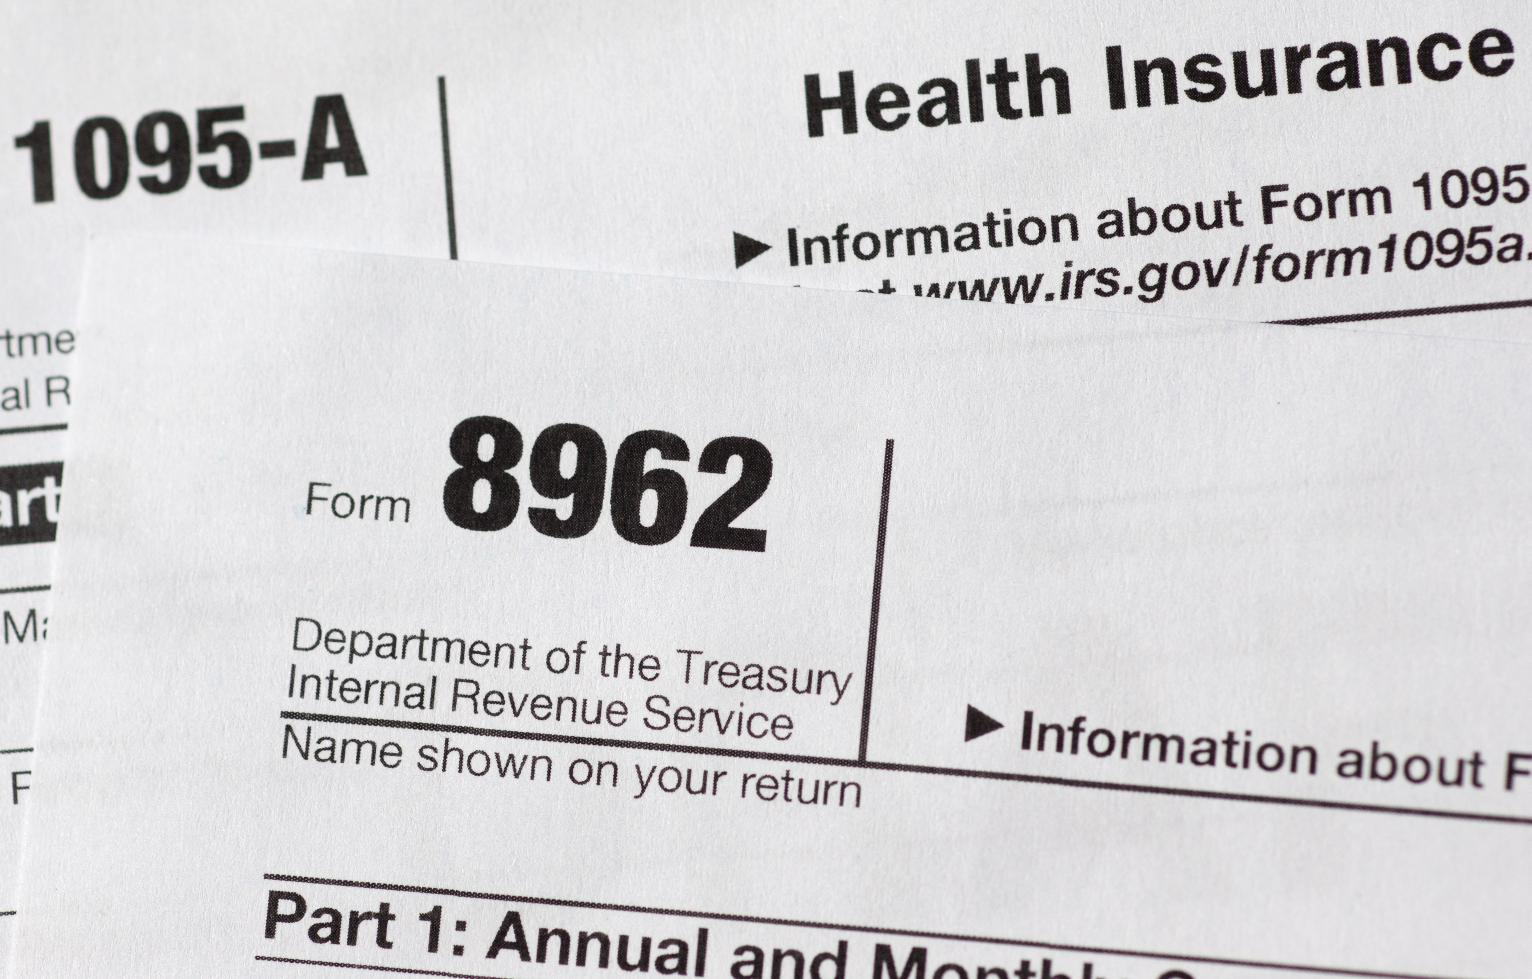 Obamacare Tax Credit Confusion Is Easily Fixable | Economic ...